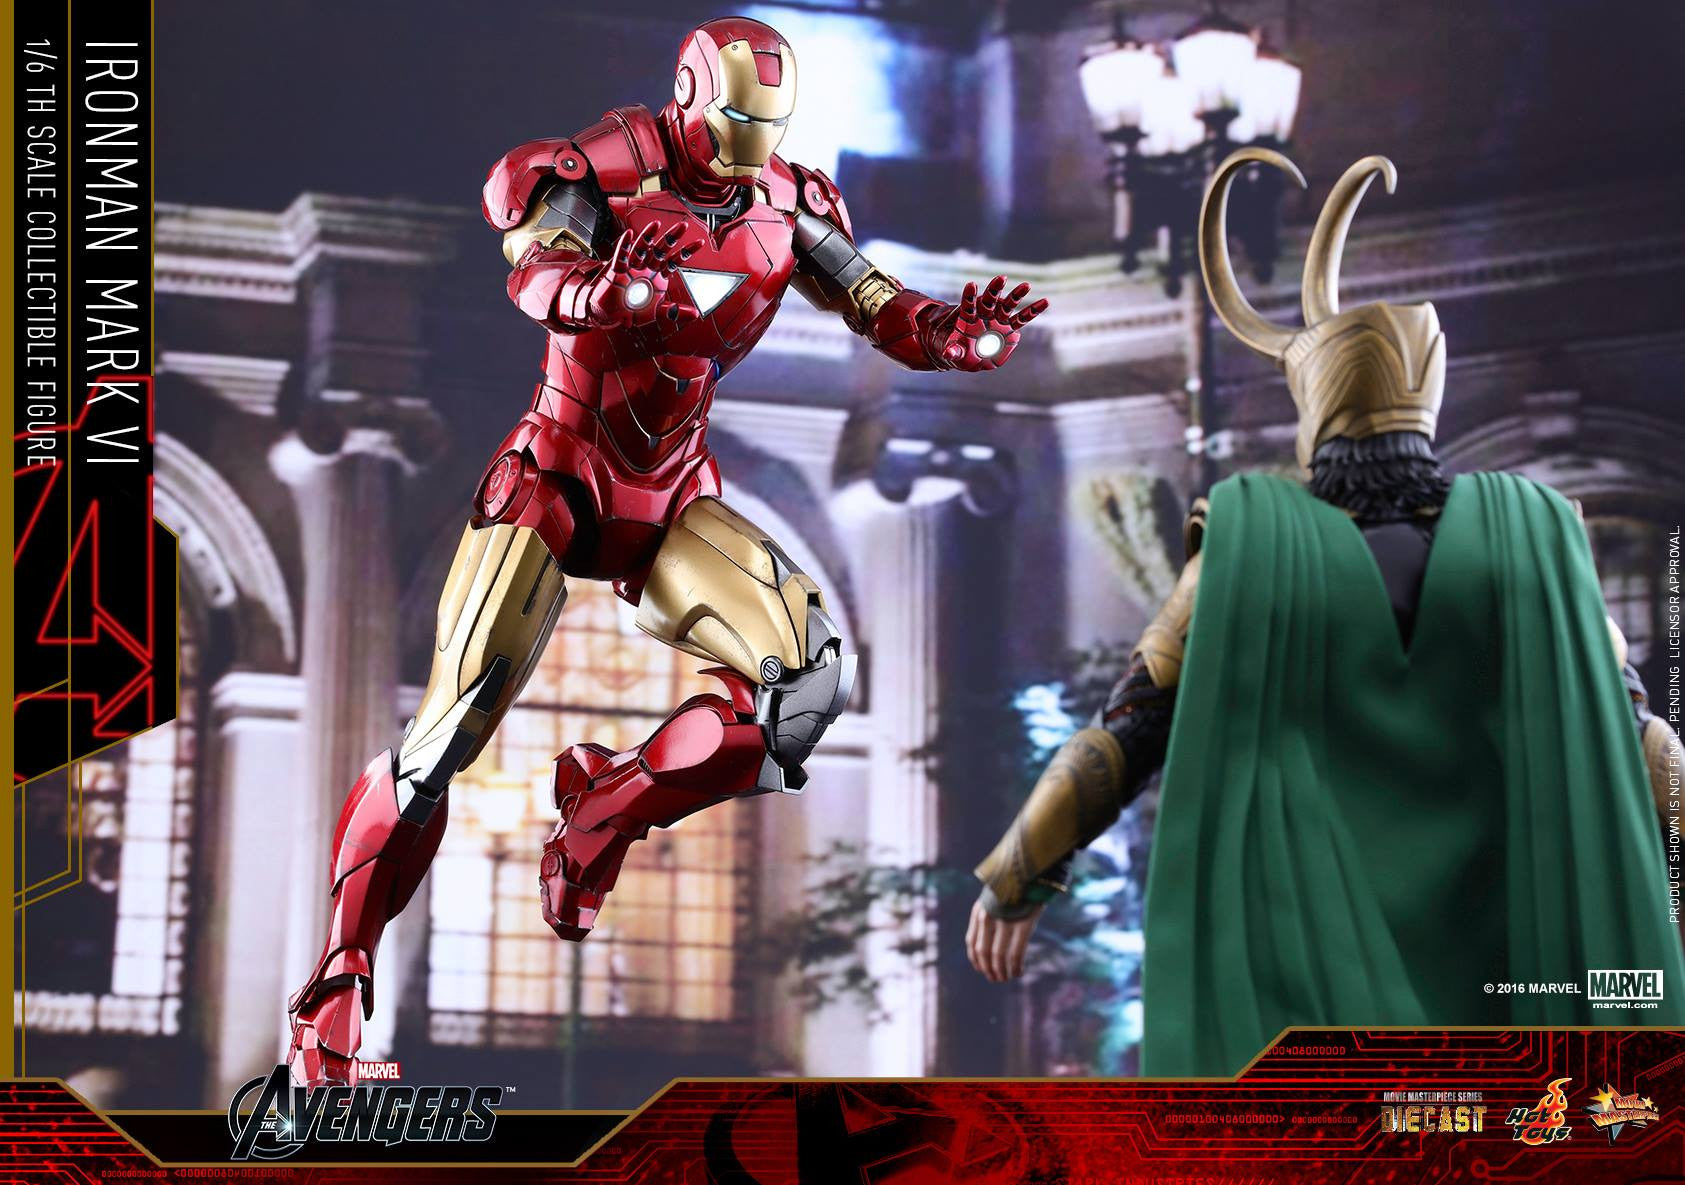 Hot Toys - MMS378D17 - The Avengers - Iron Man Mark VI (DIECAST) (Normal Edition) - Marvelous Toys - 6